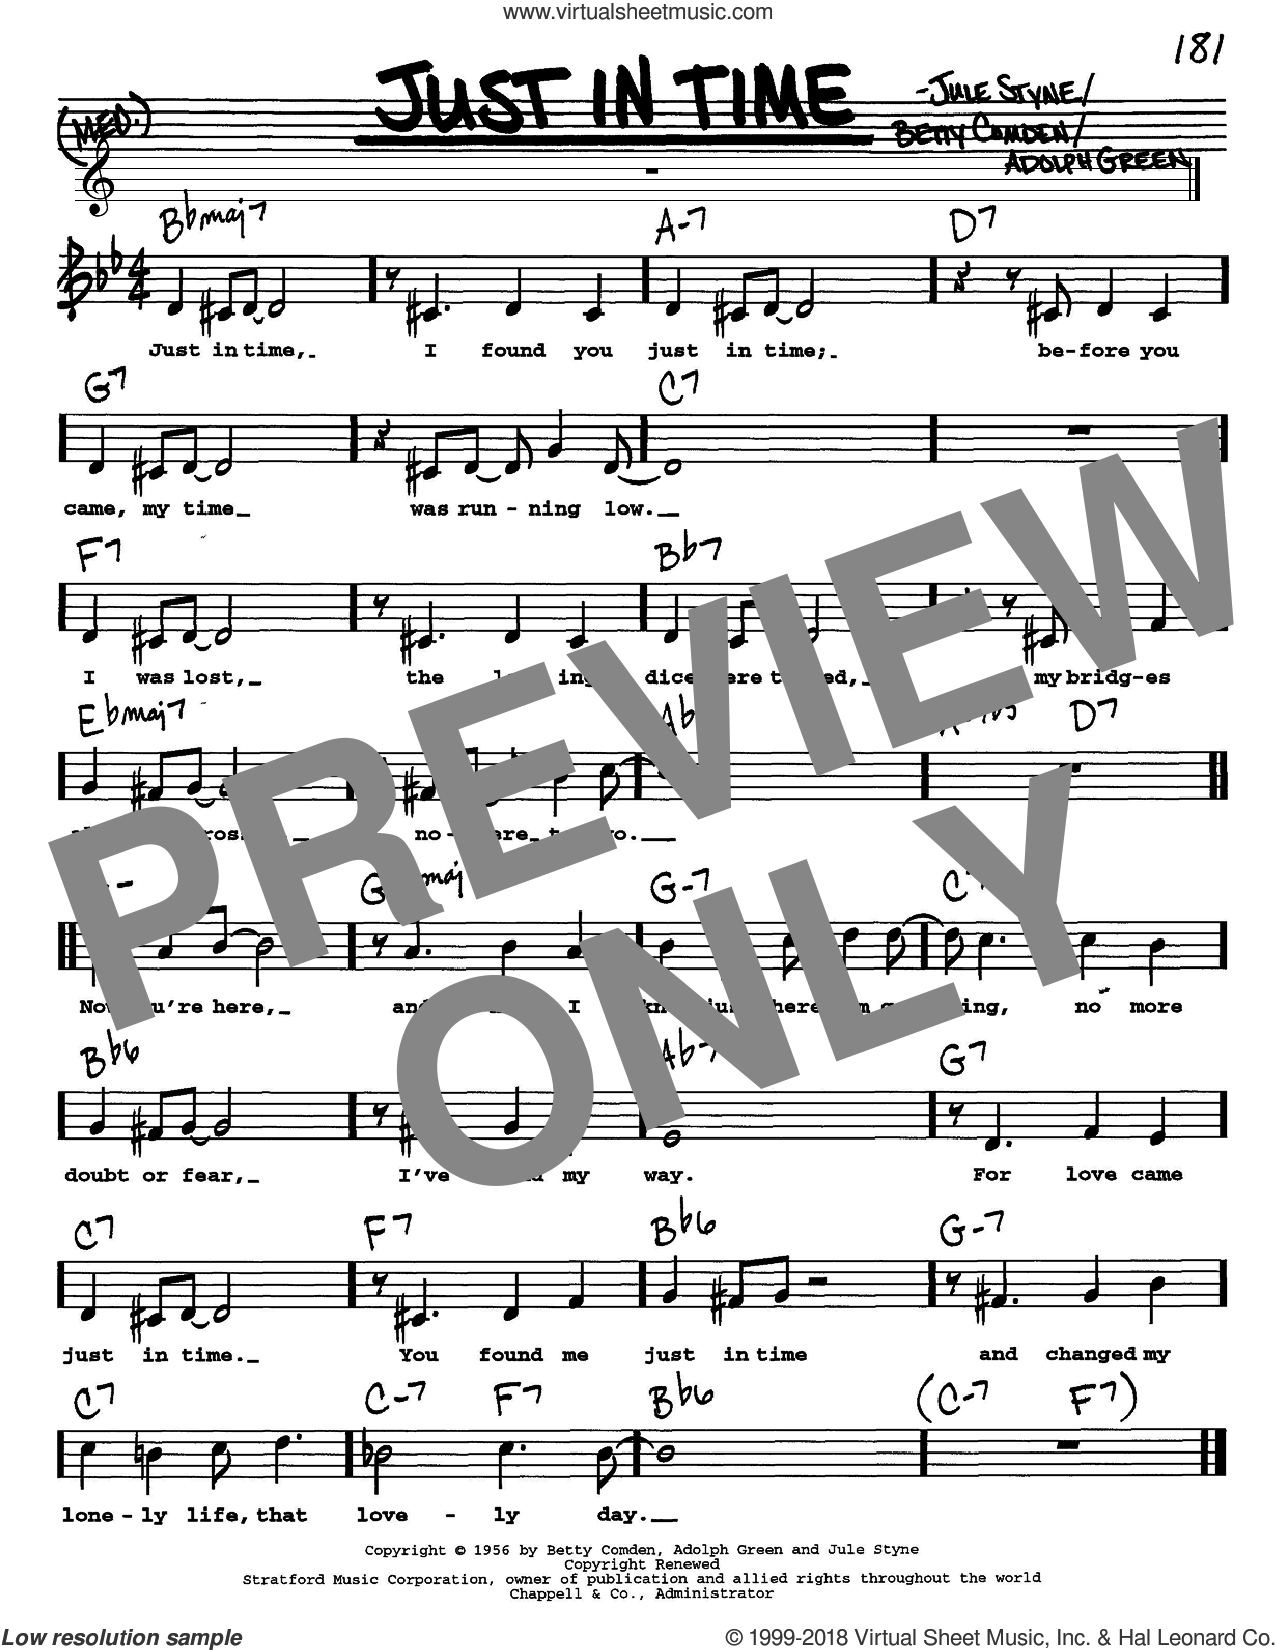 Just In Time sheet music for voice and other instruments (Vocal Volume 1) by Frank Sinatra, Adolph Green, Betty Comden and Jule Styne, intermediate. Score Image Preview.